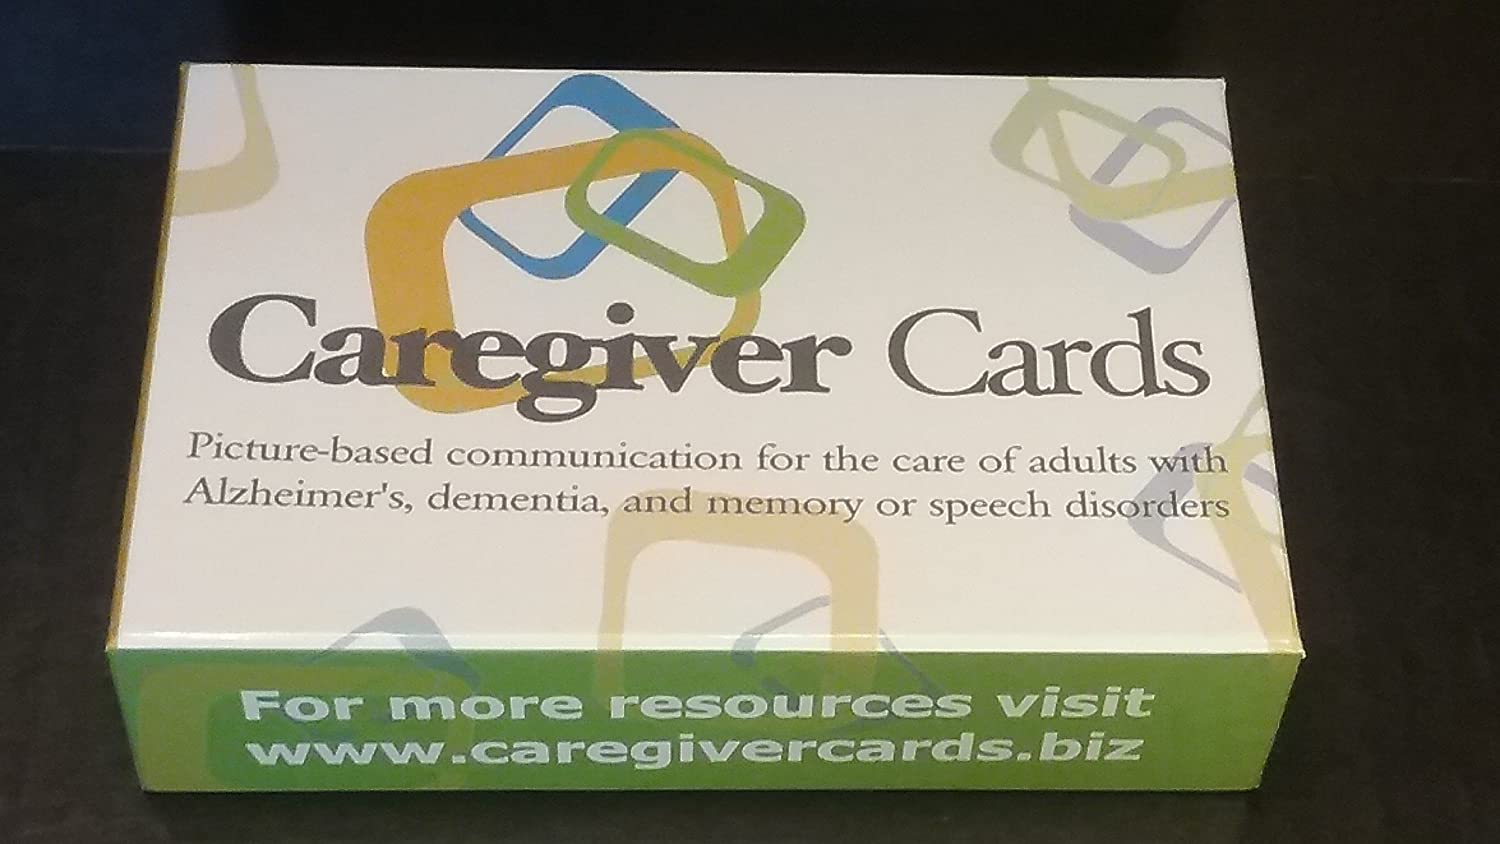 Amazon.com: Caregiver Cards - Picture Based Communication Cue Cards for Adults with Memory, Speech, and Cognitive Challenges Due to Alzheimers, ...